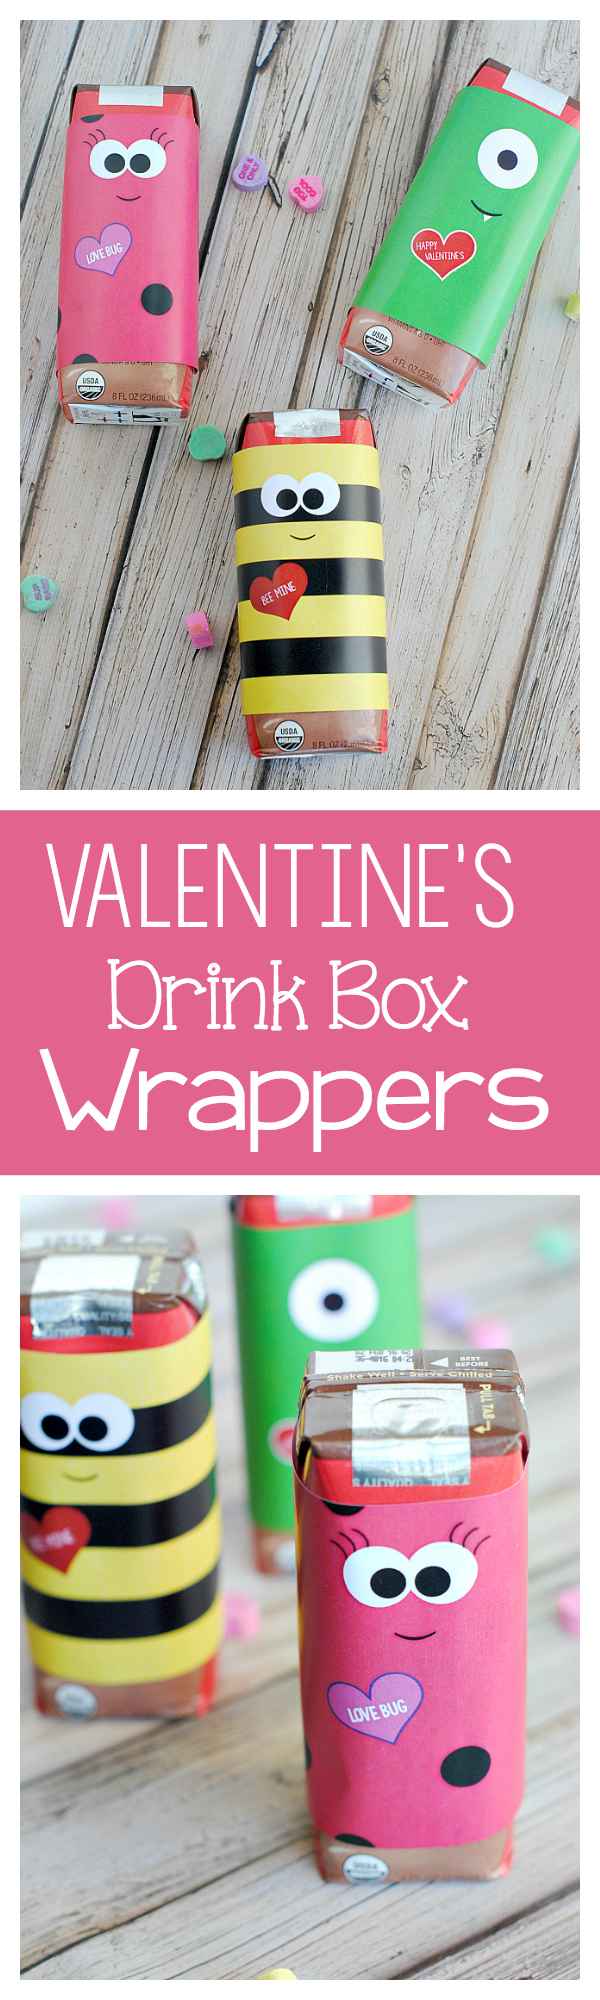 Cute Valentine's Drink Box Wrappers-Perfect for a kid's party! Just print and wrap!